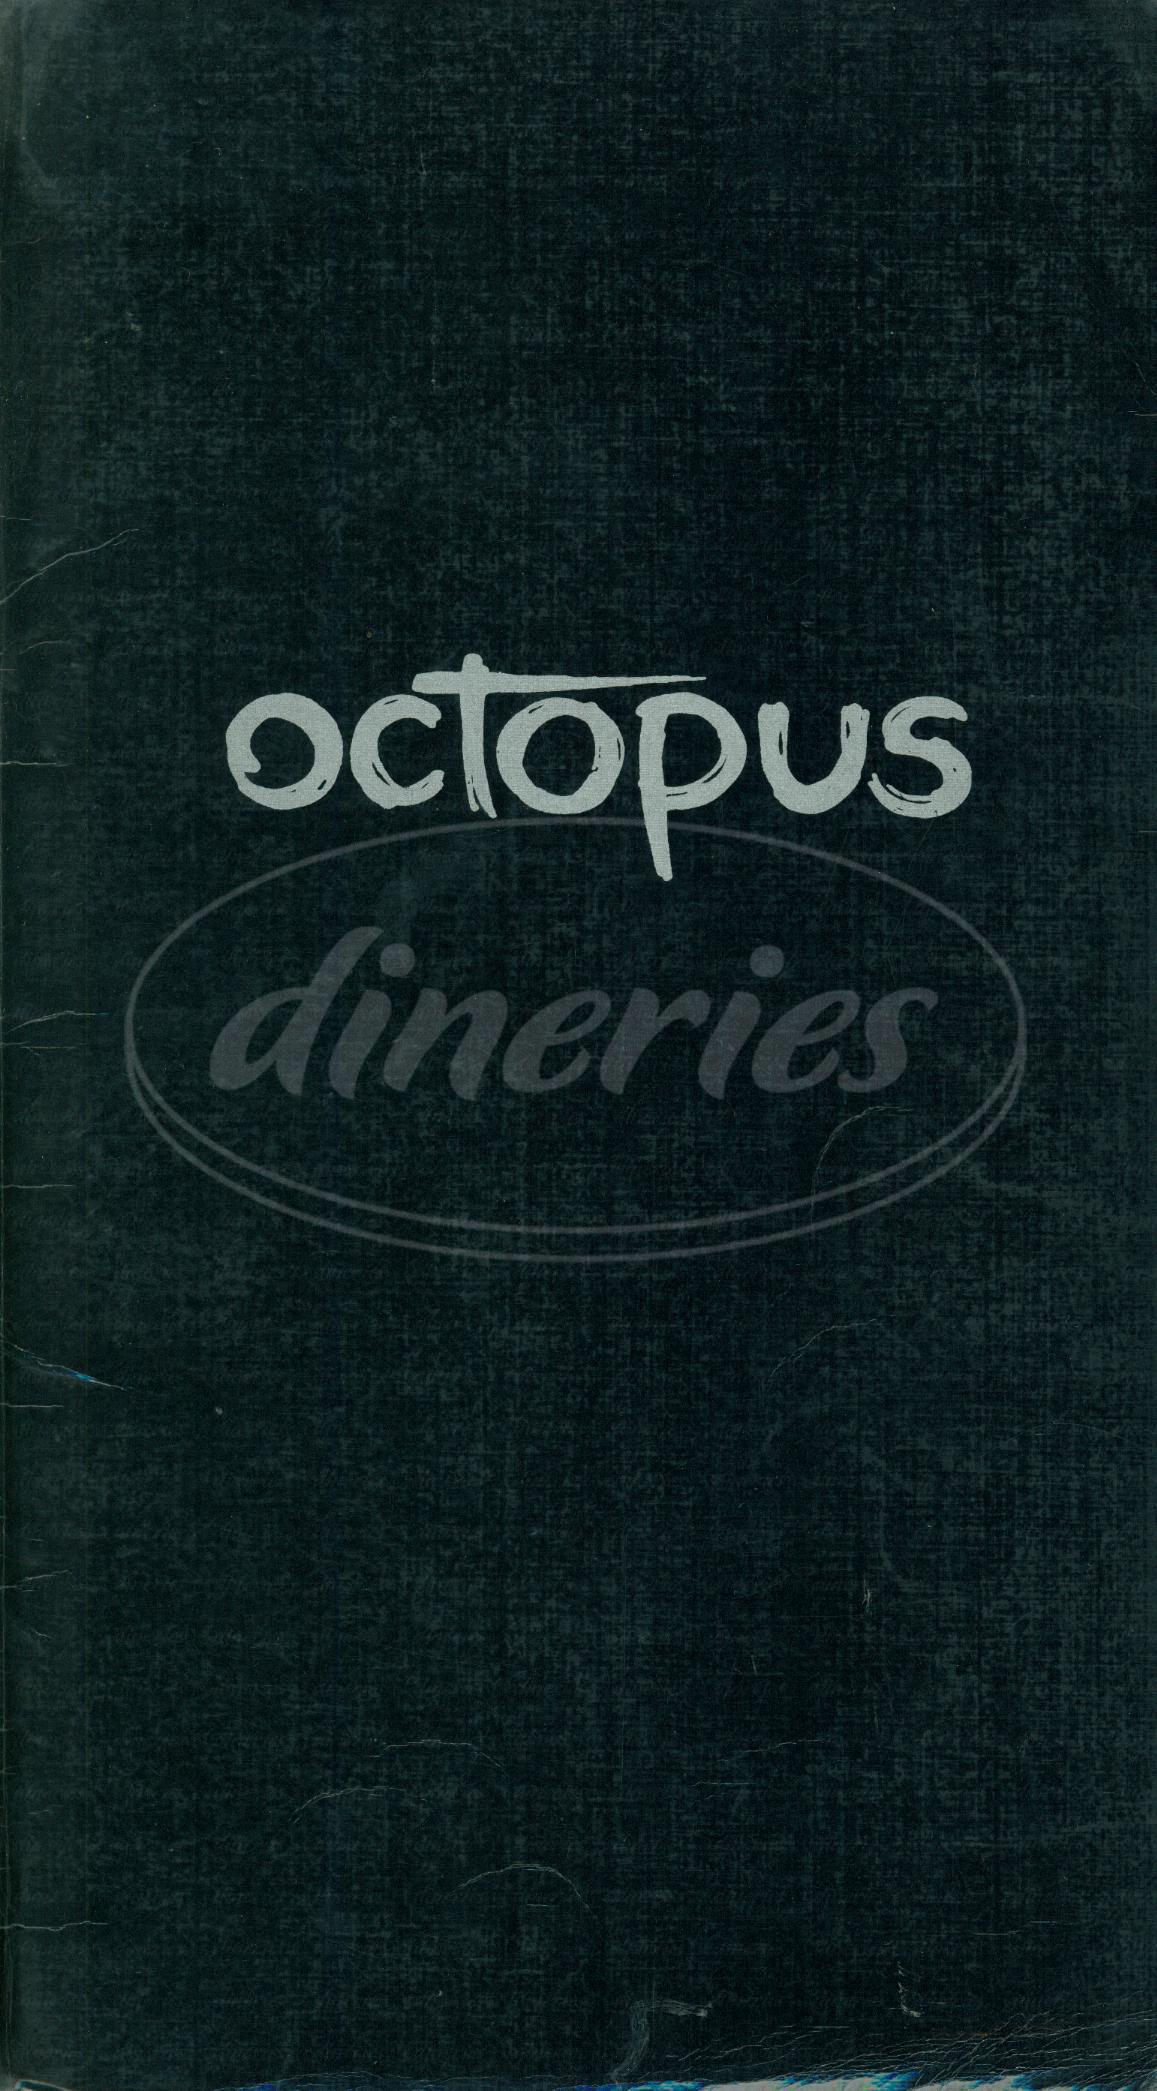 menu for Octopus